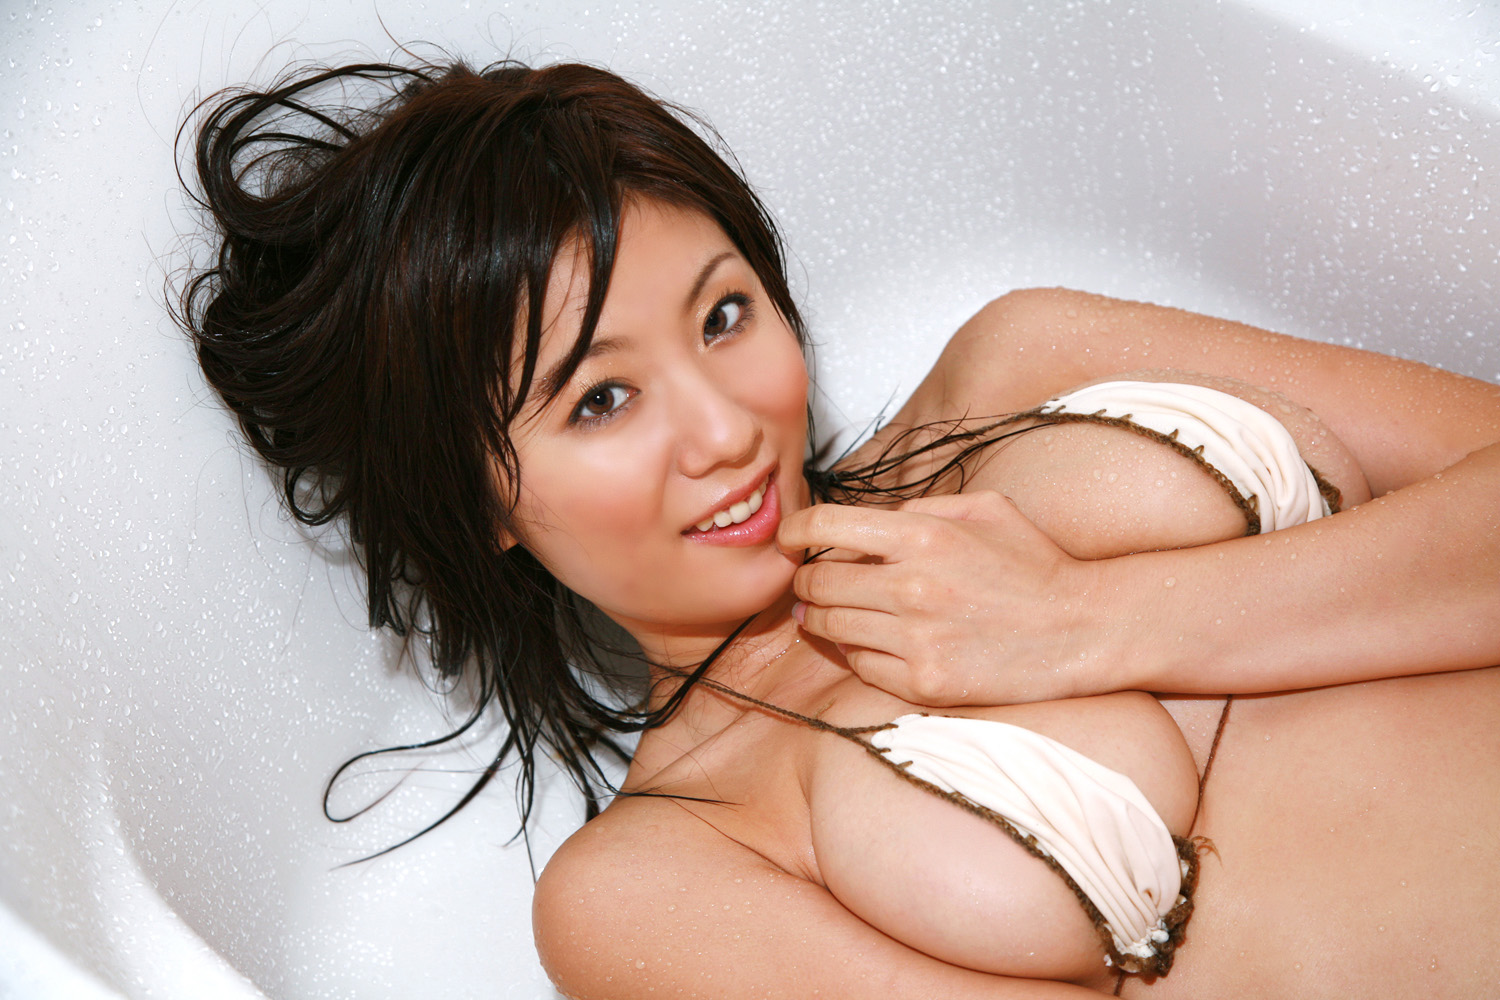 Her adult videos have won first prize in Japanese Adult Video Awards, ...